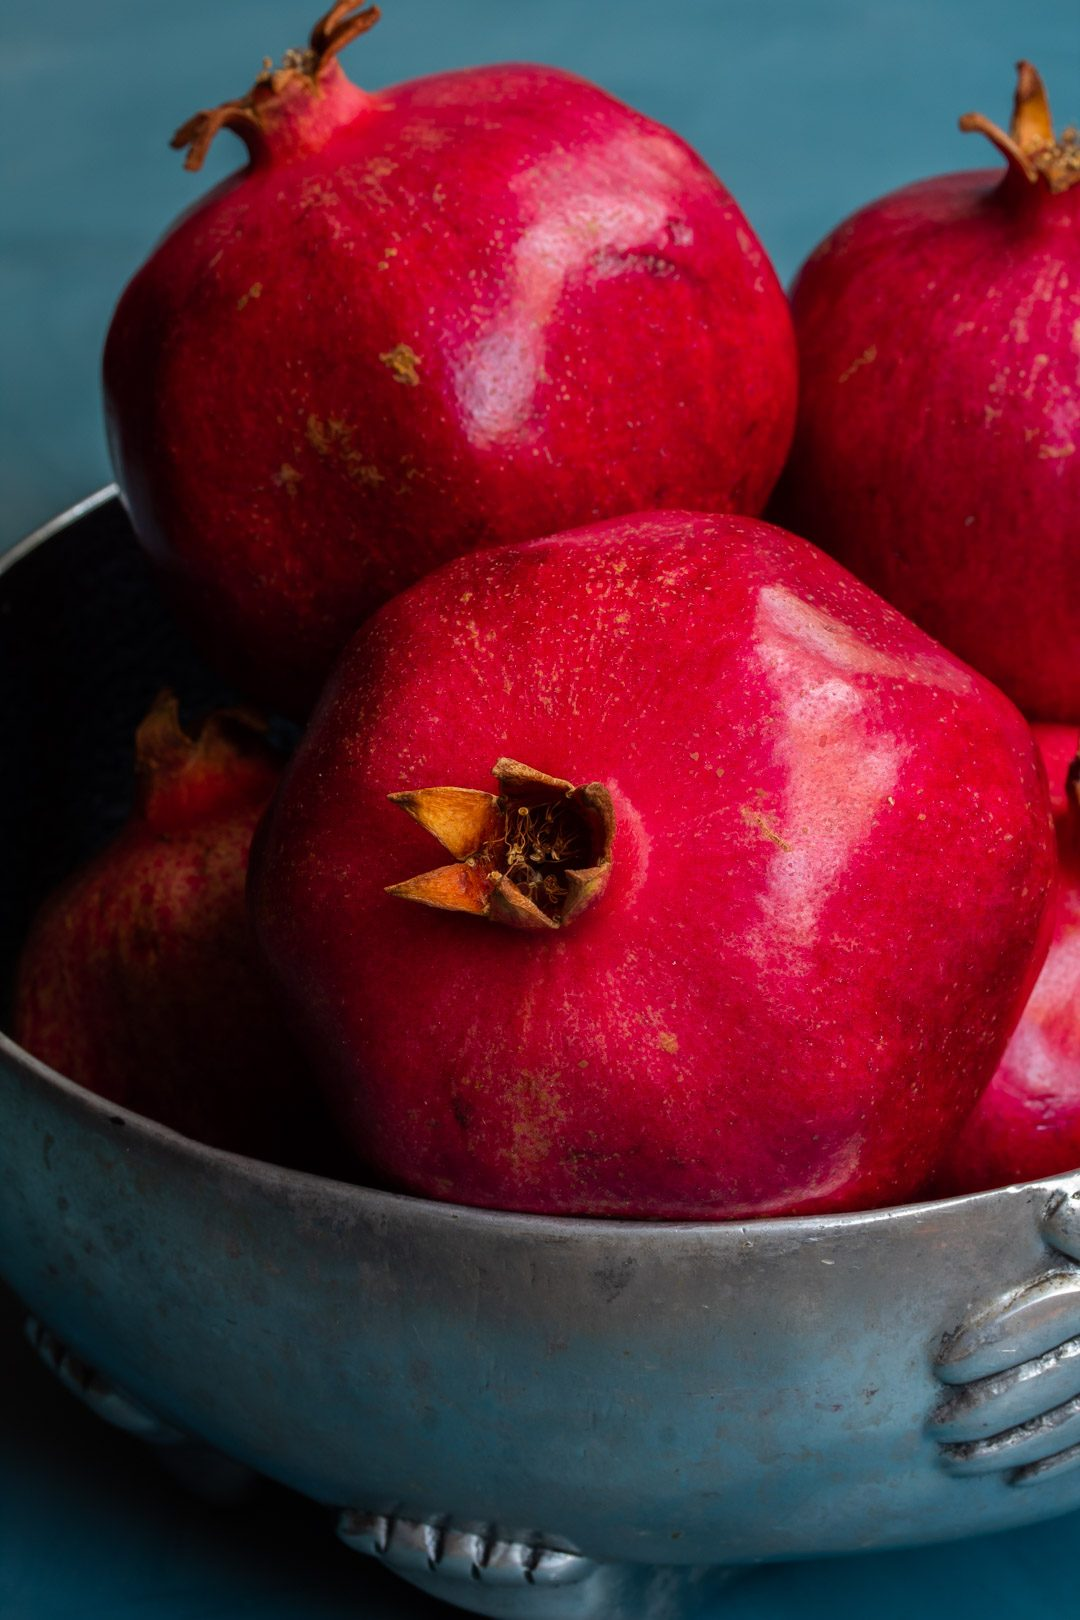 pomegranates in metal bowl from 45 degrees used to make grenadine